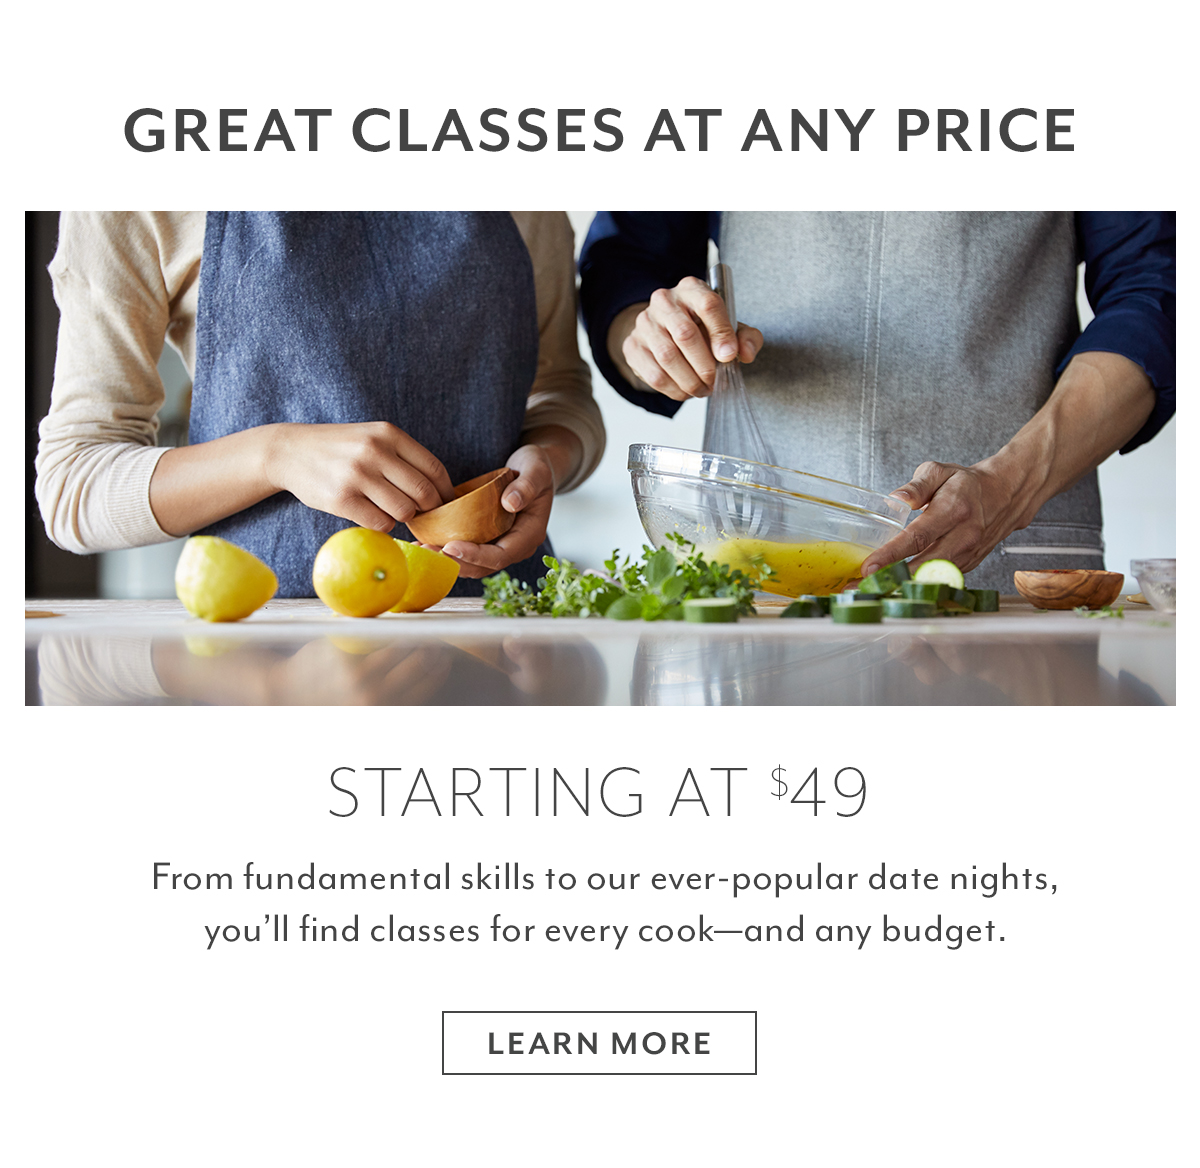 Great Classes at Any Price